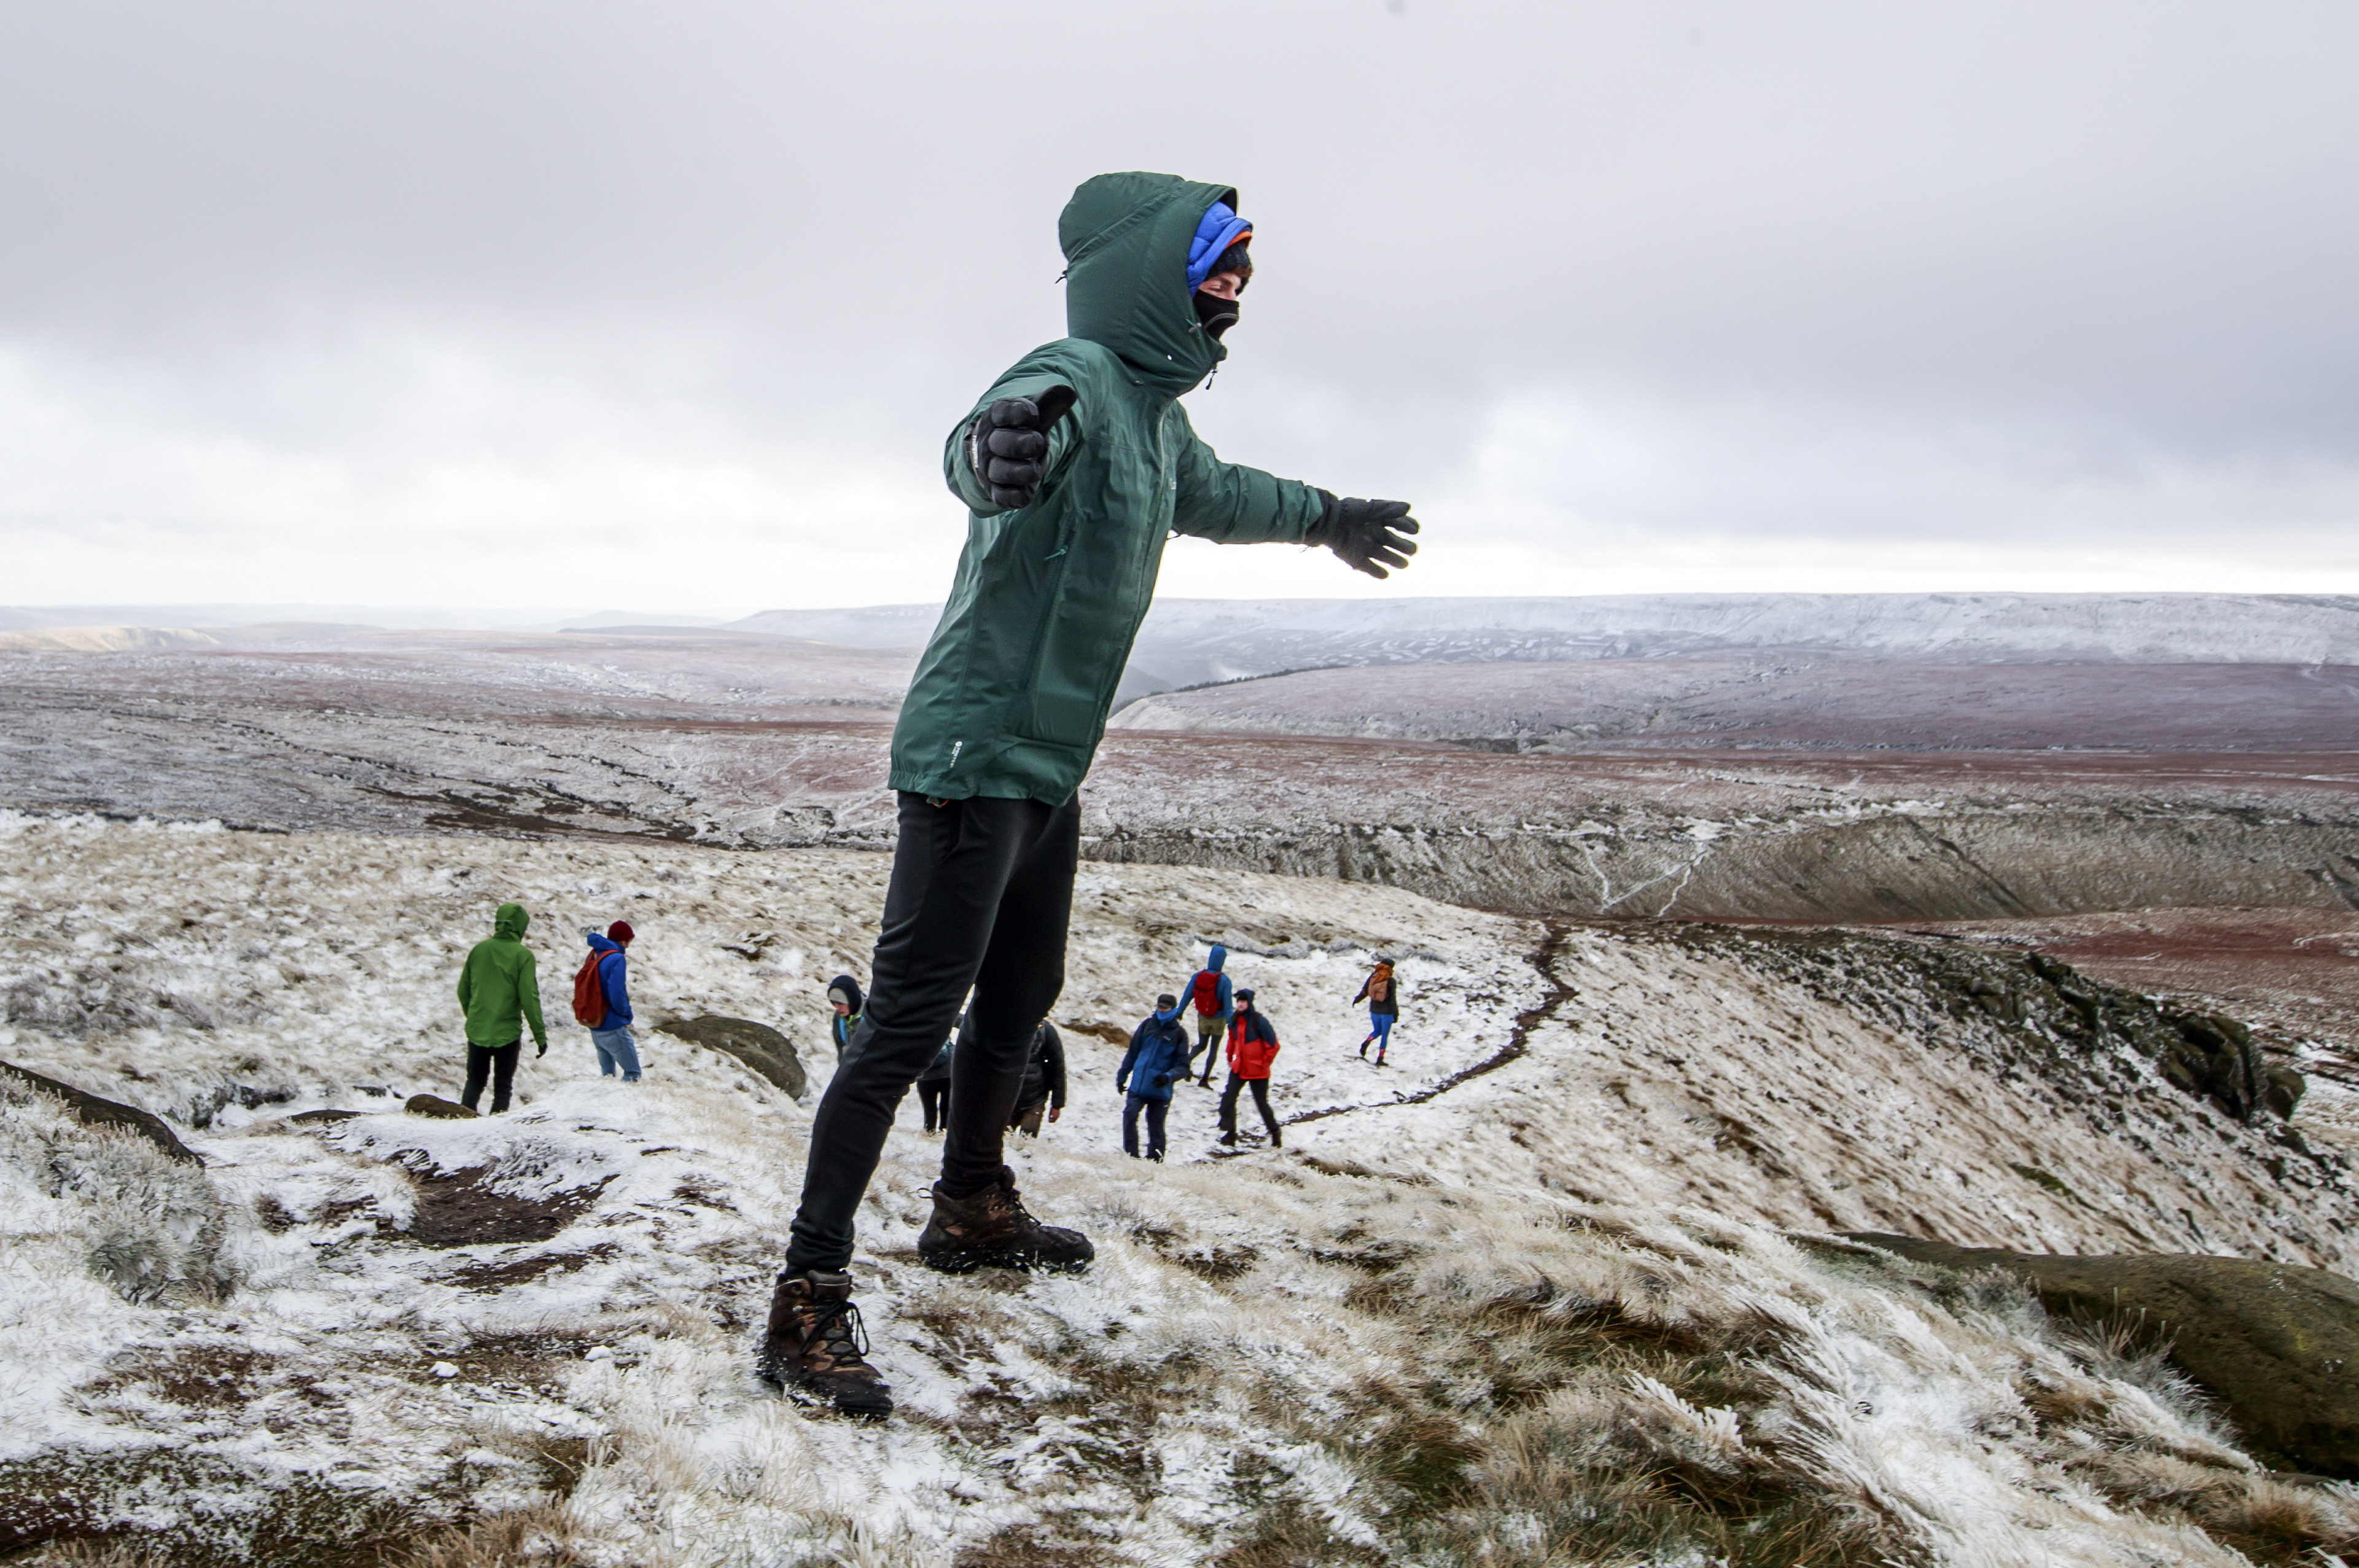 Hikers in snow on Bleaklow Moor in the Peak district of Derbyshire, after days of wet and wintry weather across the Christmas break, with a cold snap and icy conditions still to come.